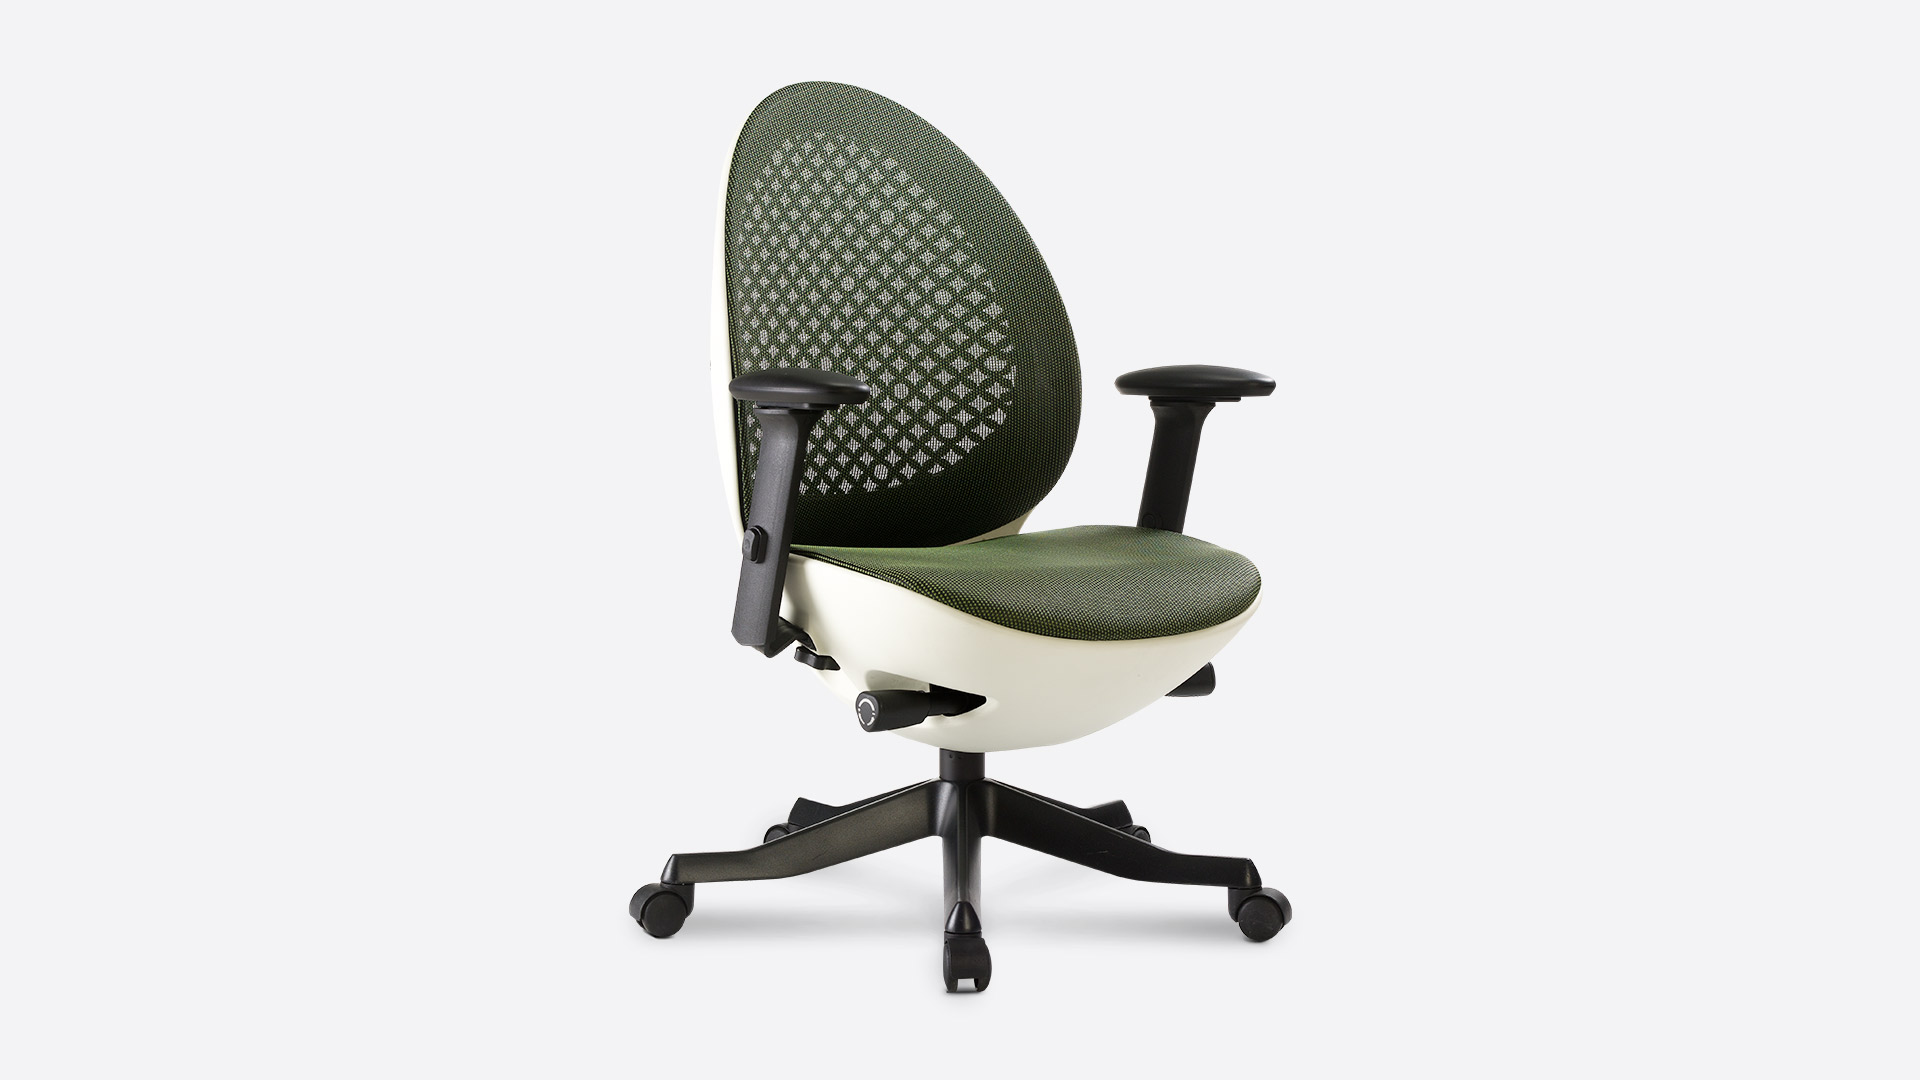 Does Your Child Have Trouble Focusing on Homework? Here's Why Ergonomic Chairs May Solve the Problem